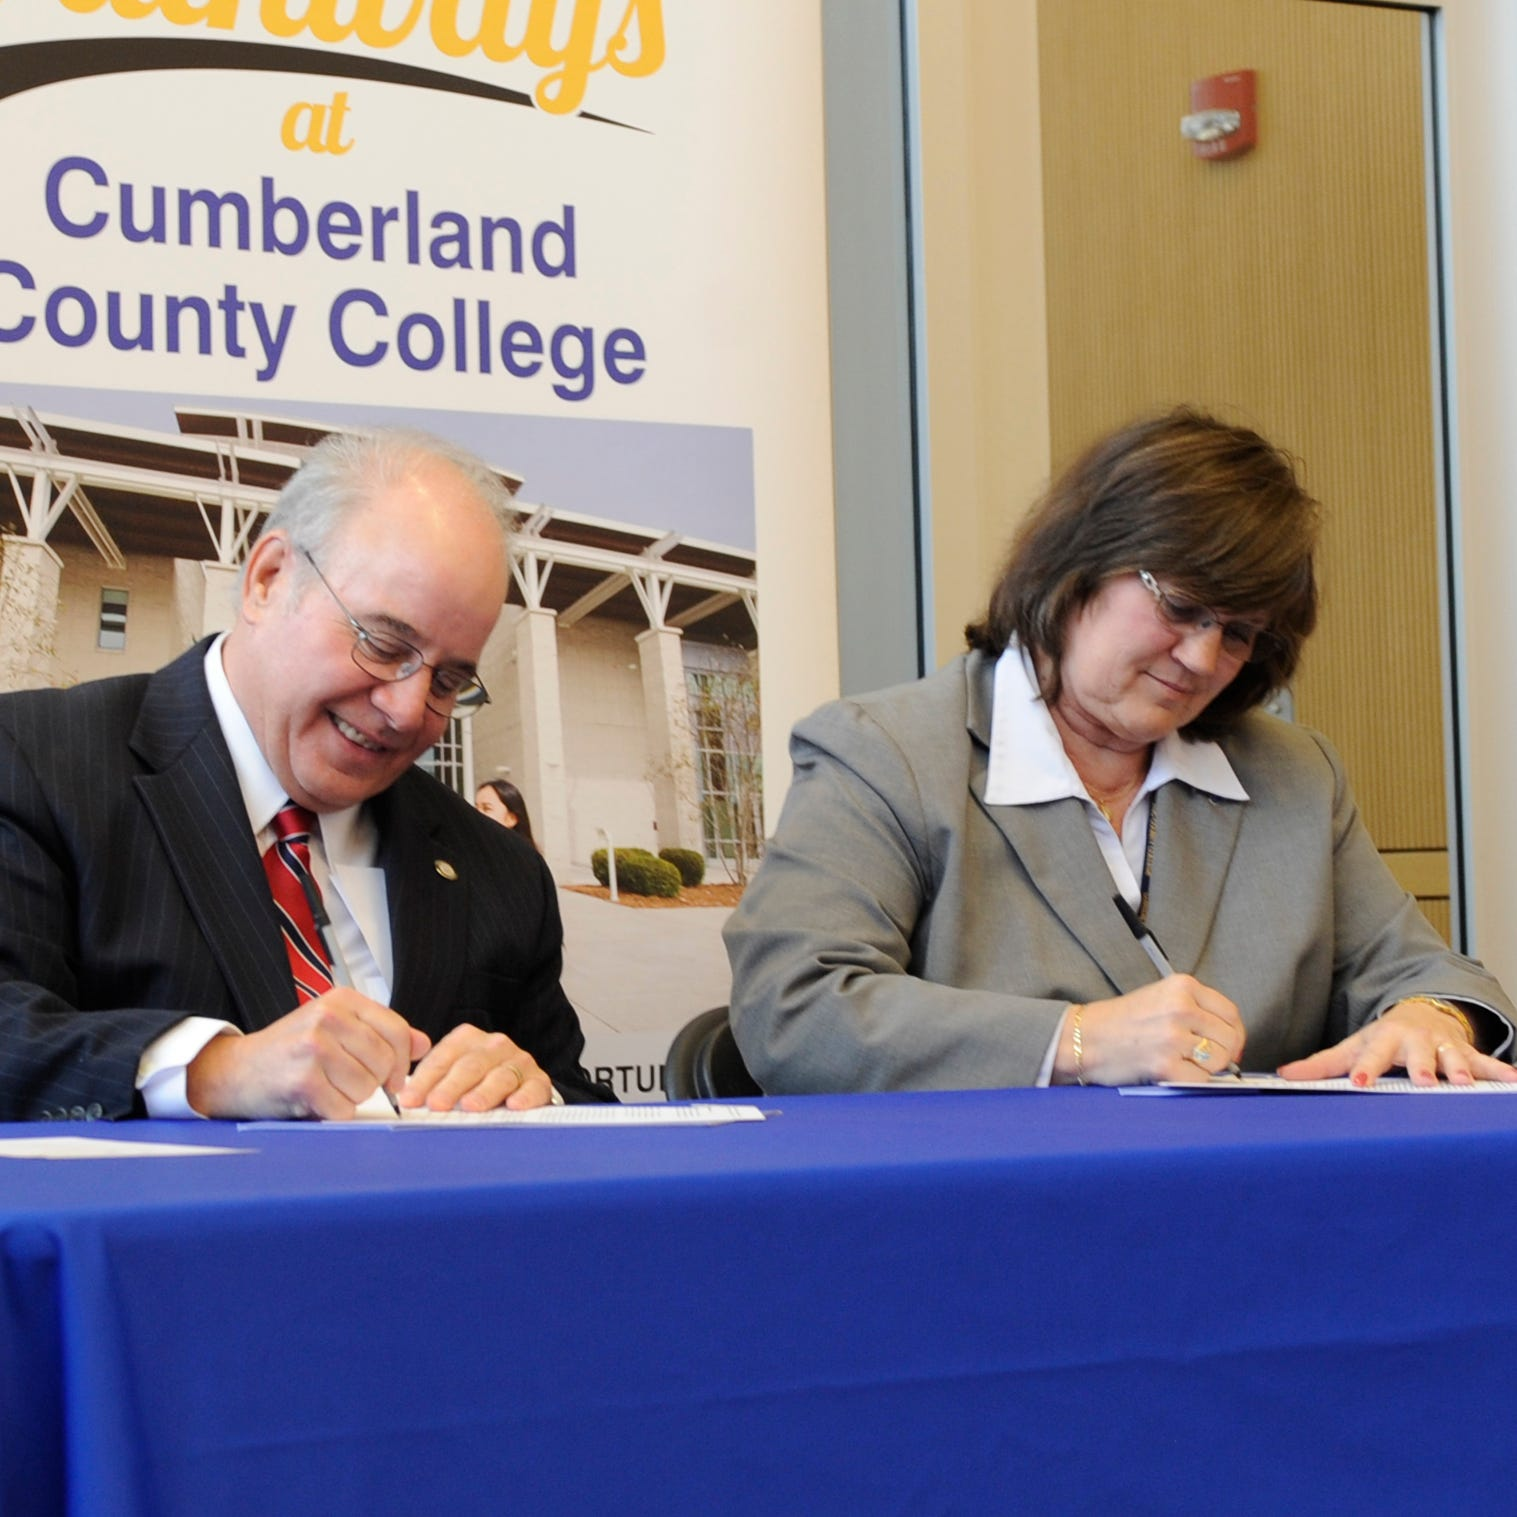 YOUR TURN: New year, new opportunities for students at Cumberland County College